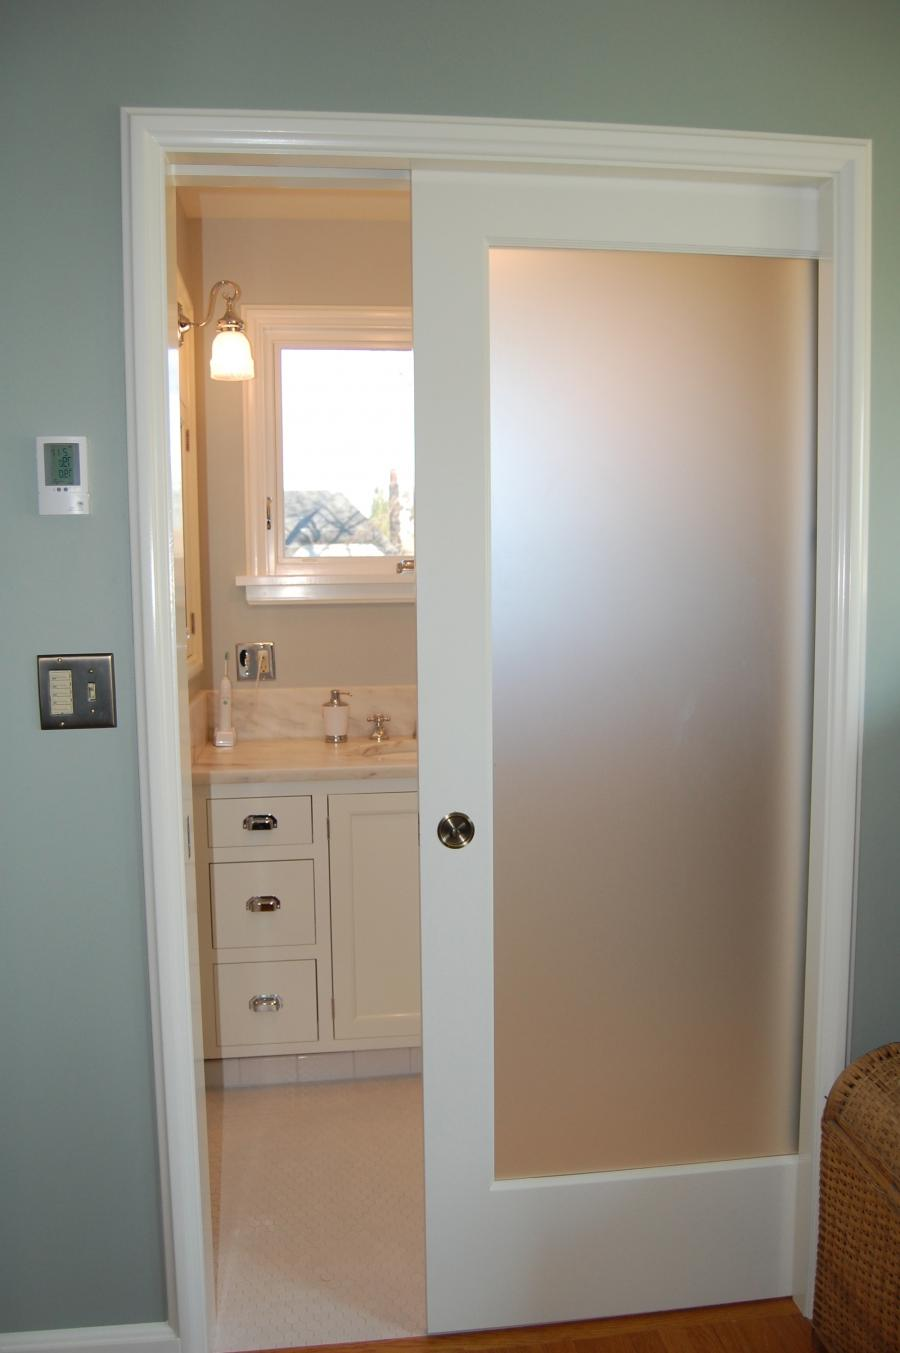 Show me photos of pocket doors for bathrooms for Small bathroom entry door ideas